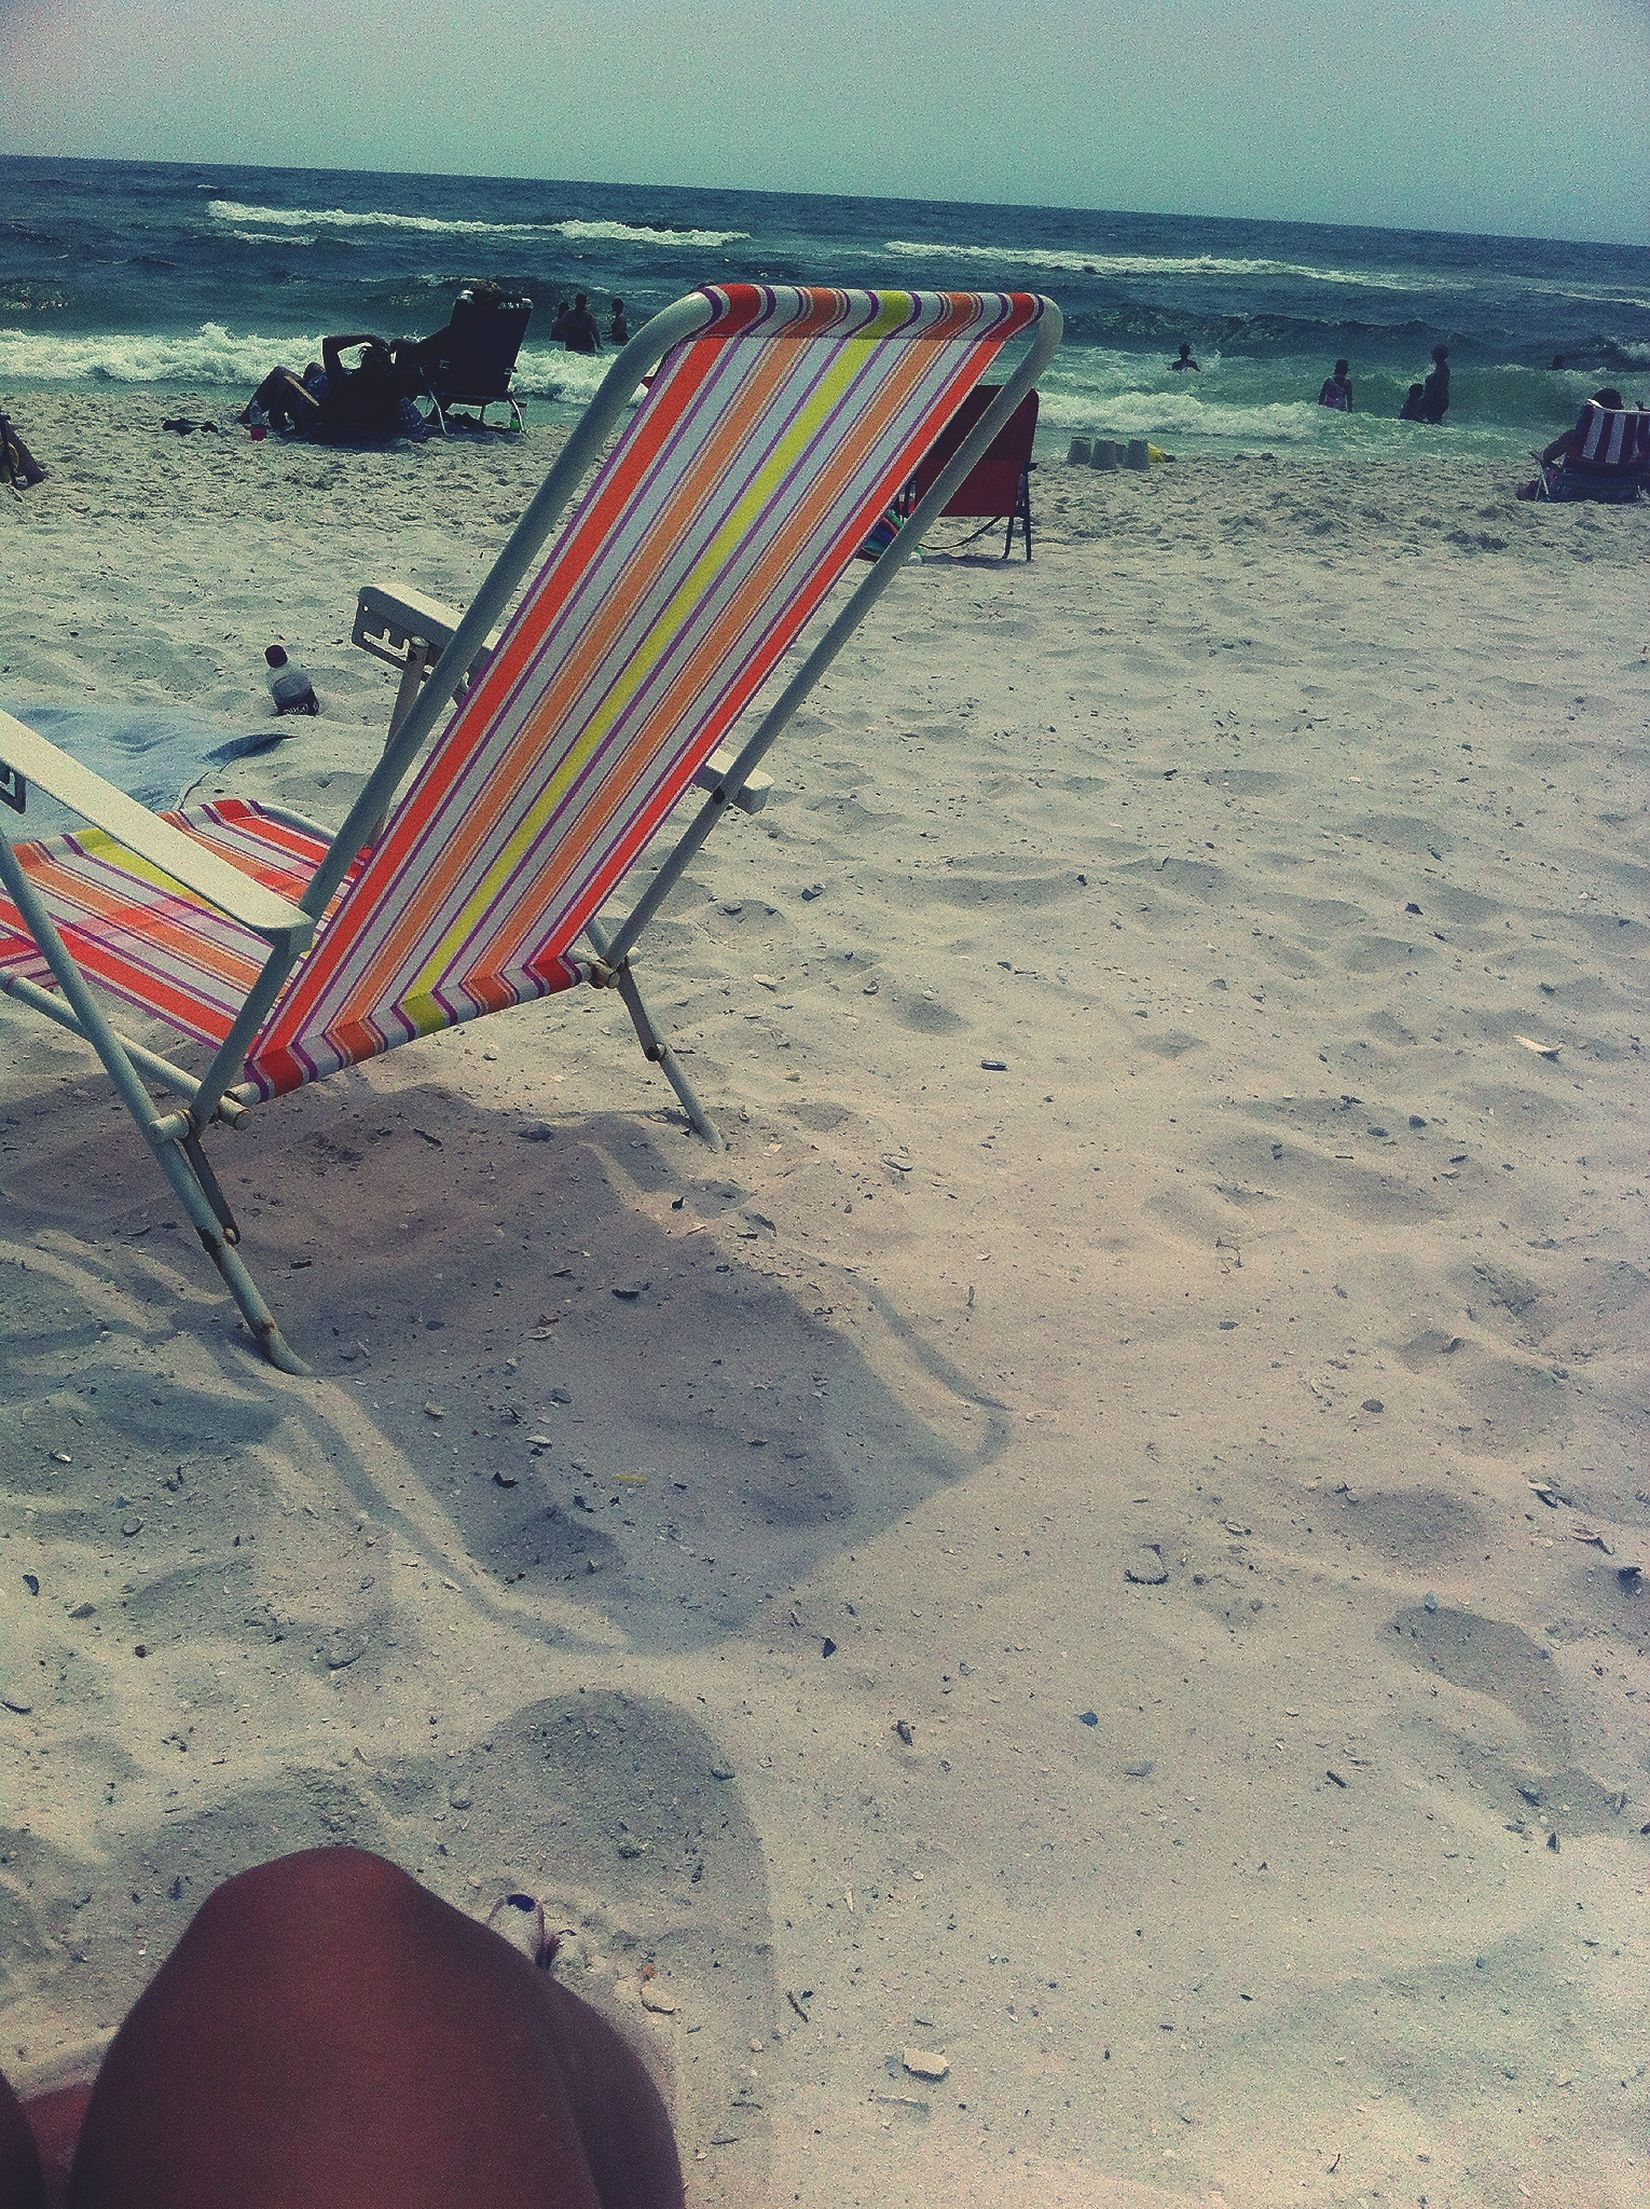 i can picture myself on some beach....somewhere so enjoying the beach right now!